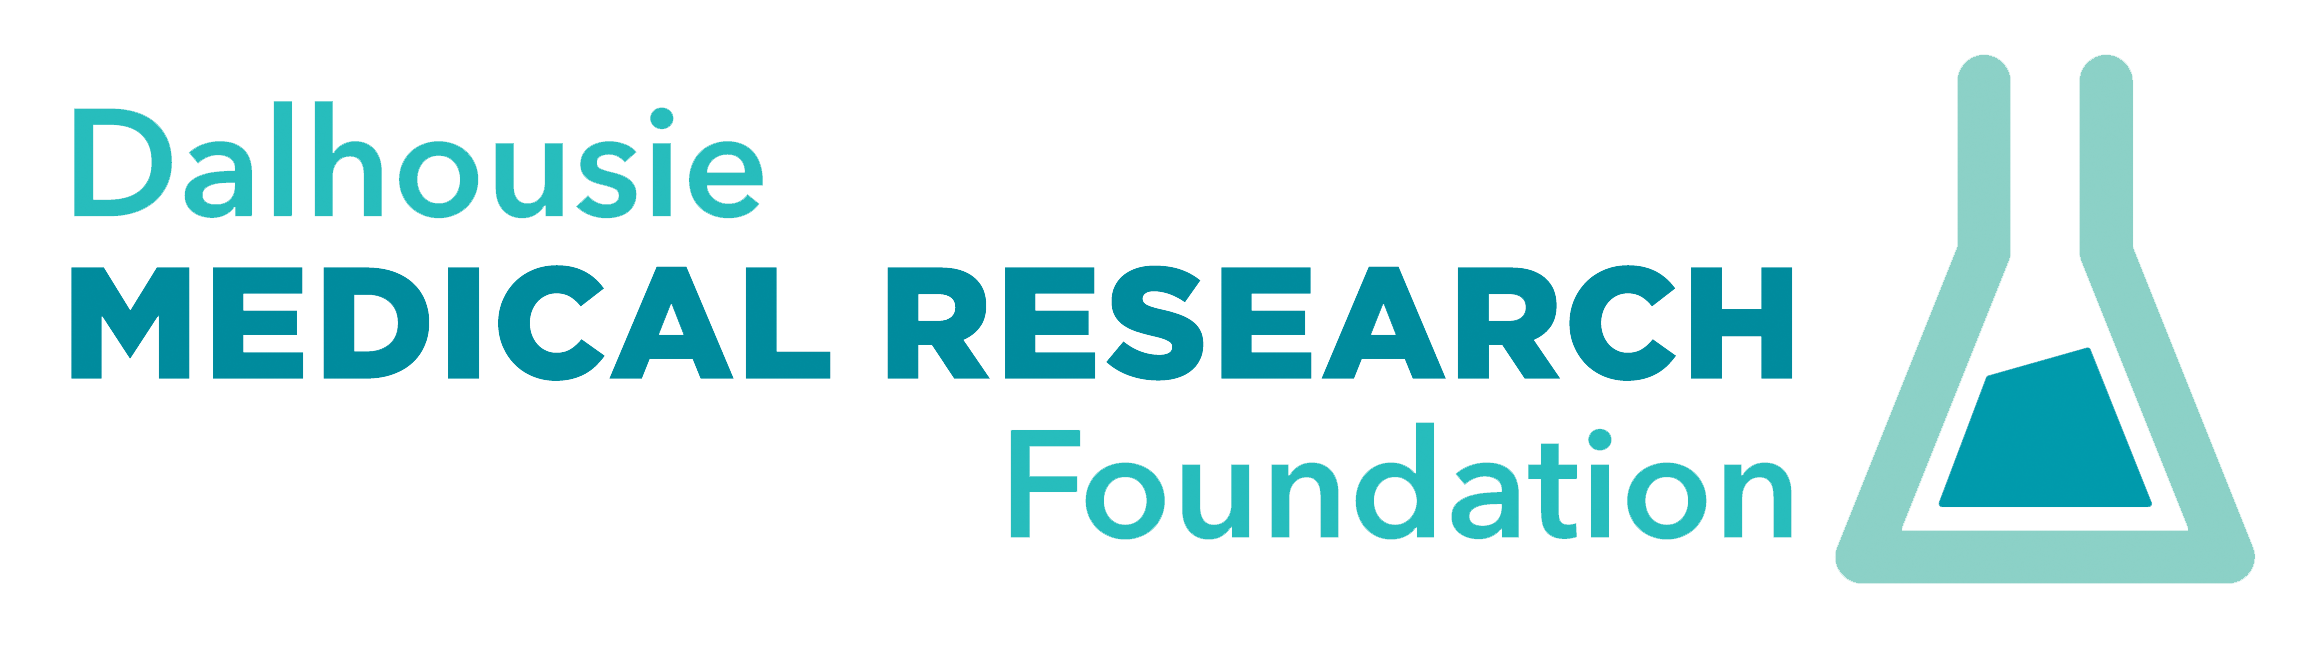 Dalhousie Medical Research Foundation